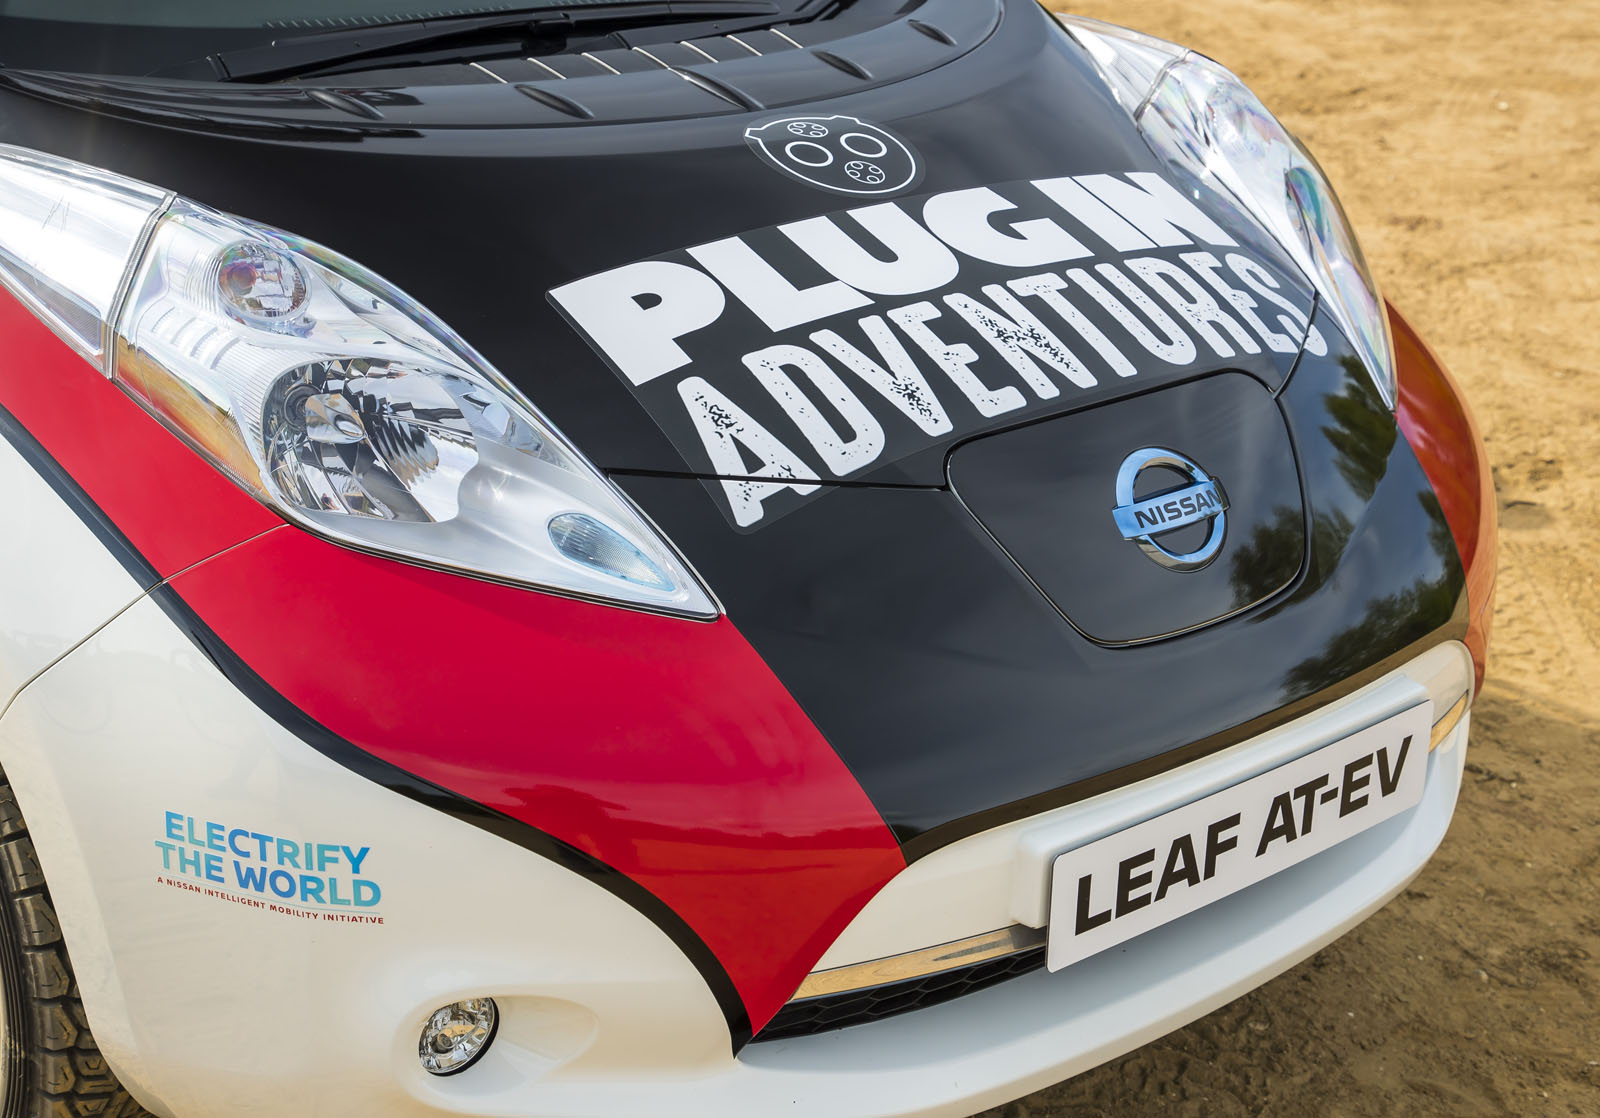 Nissan Leaf AT-EV